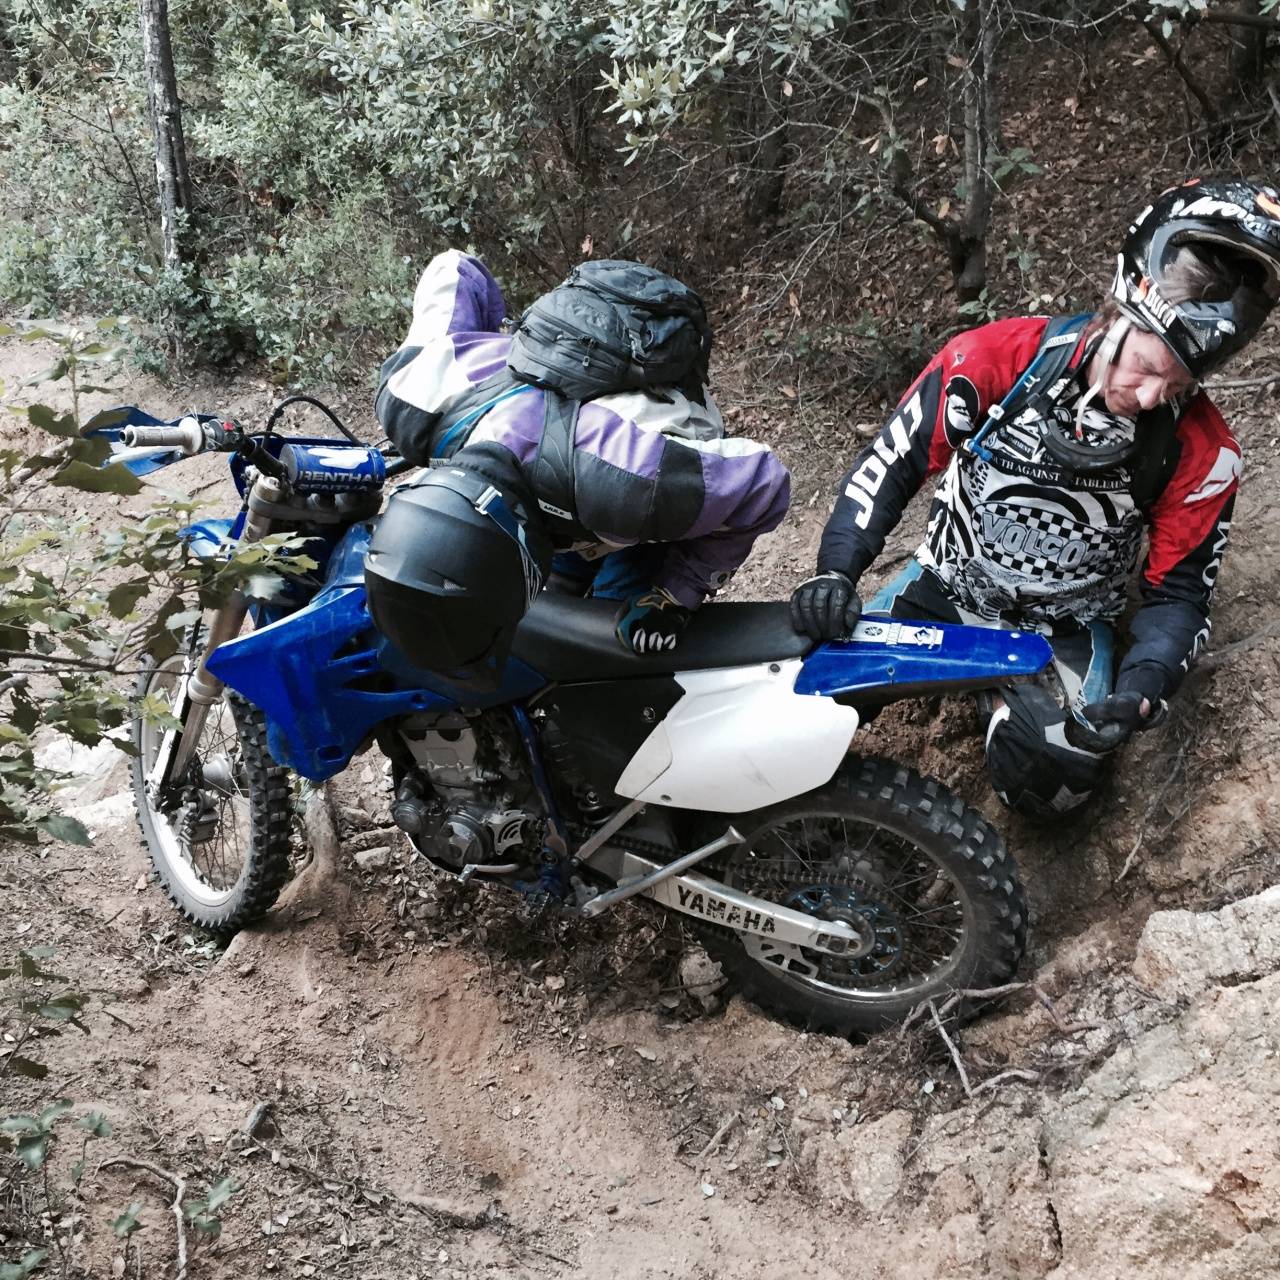 Enduro in spain